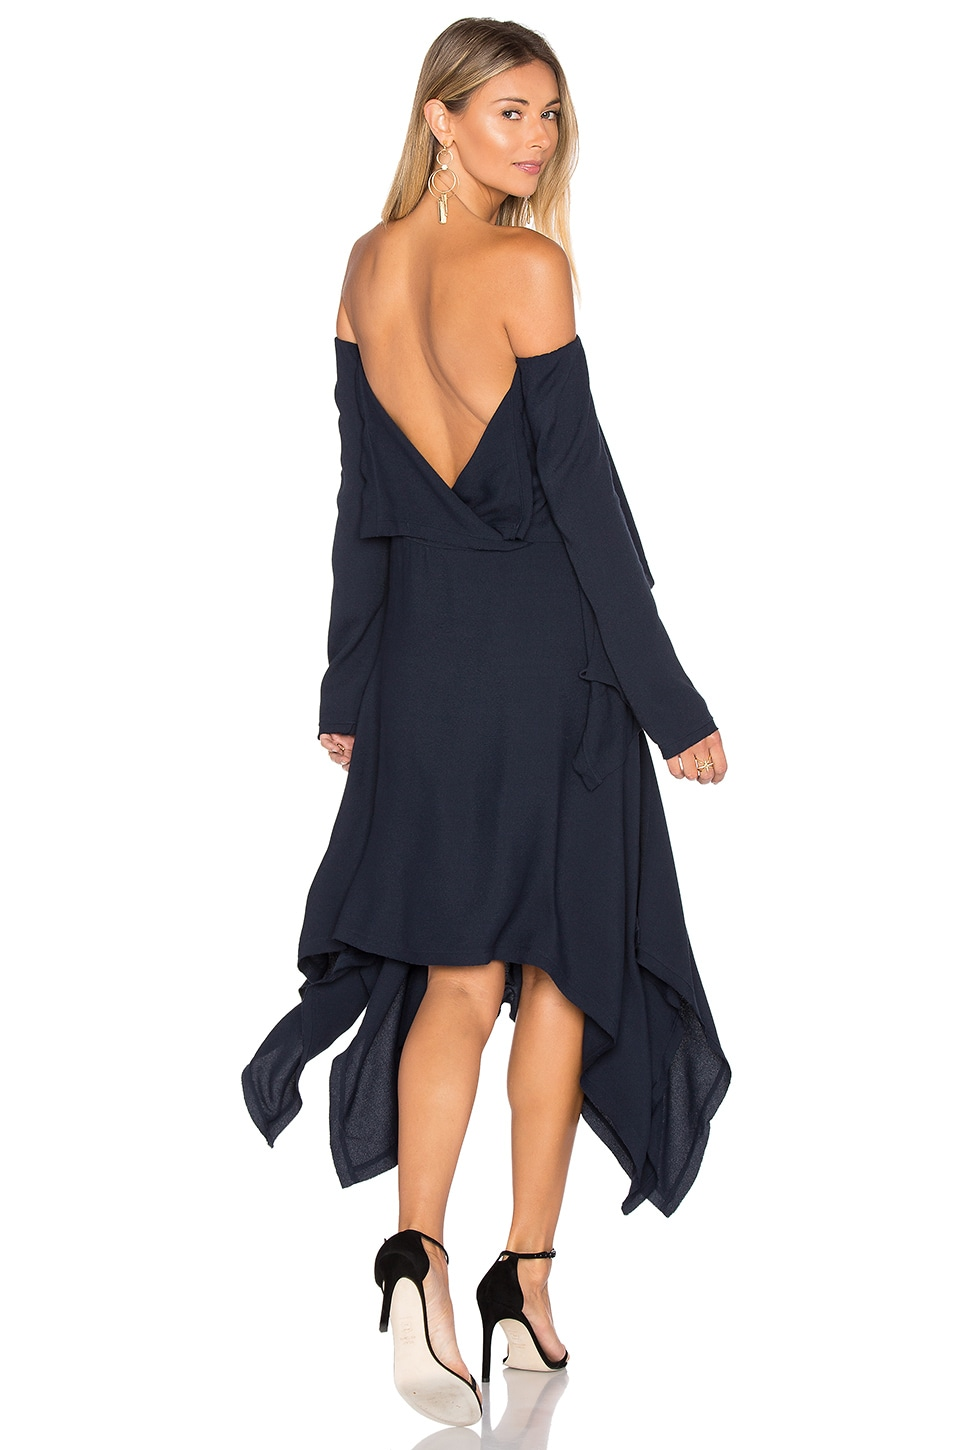 Off Shoulder Backless Dress